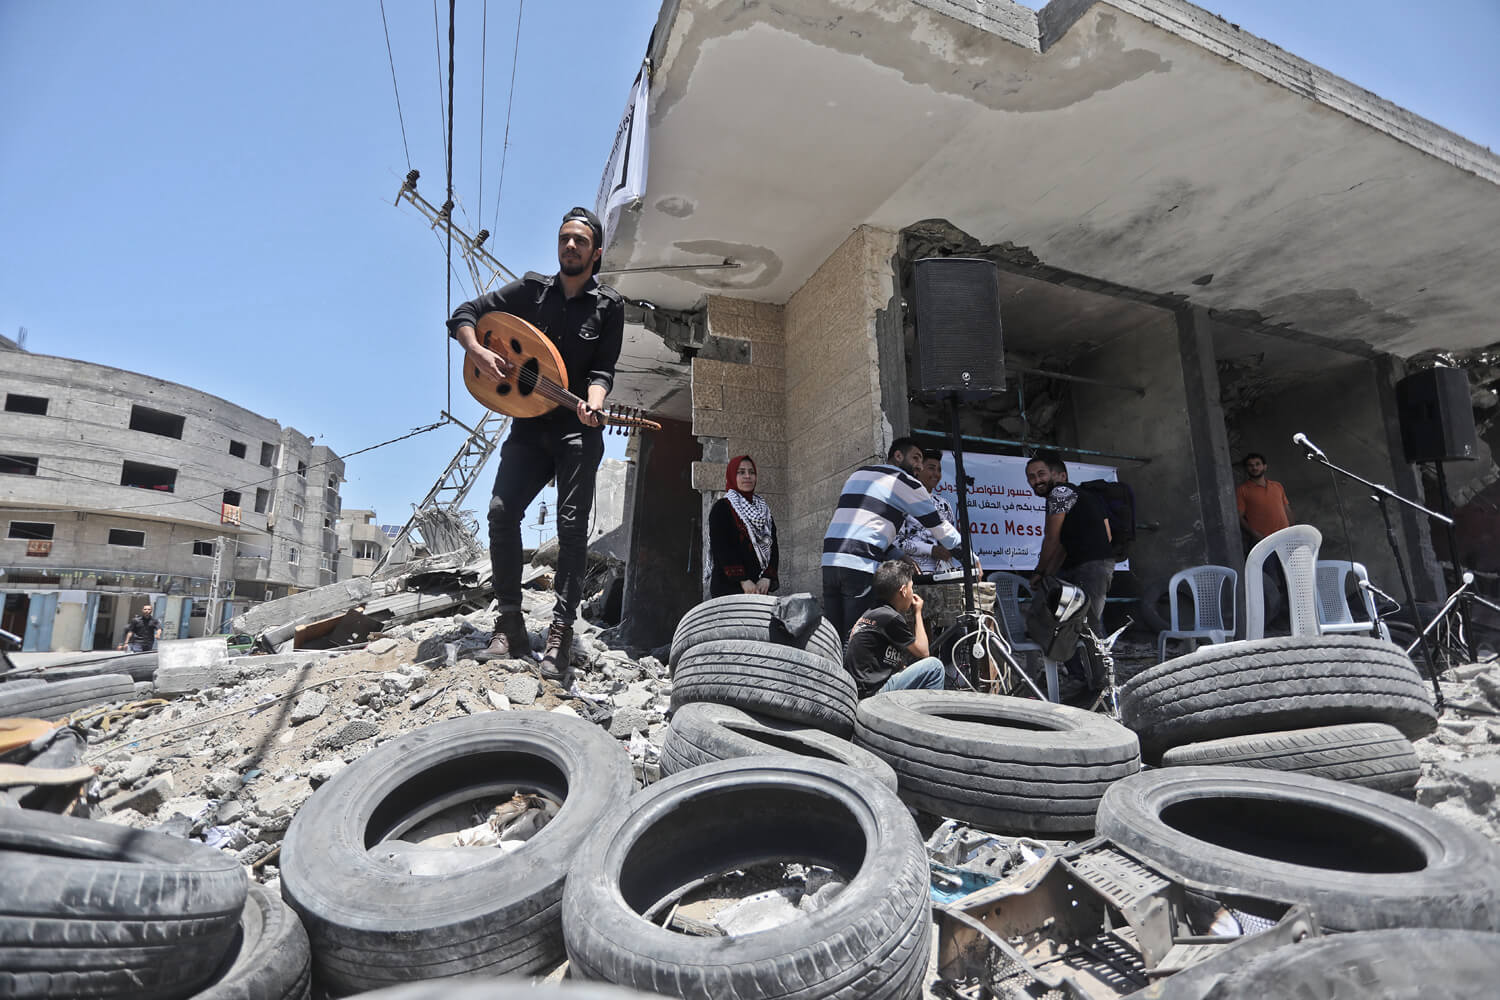 A concert in the ruins of the al-Qamar building (Photo: Mohammed Asad)